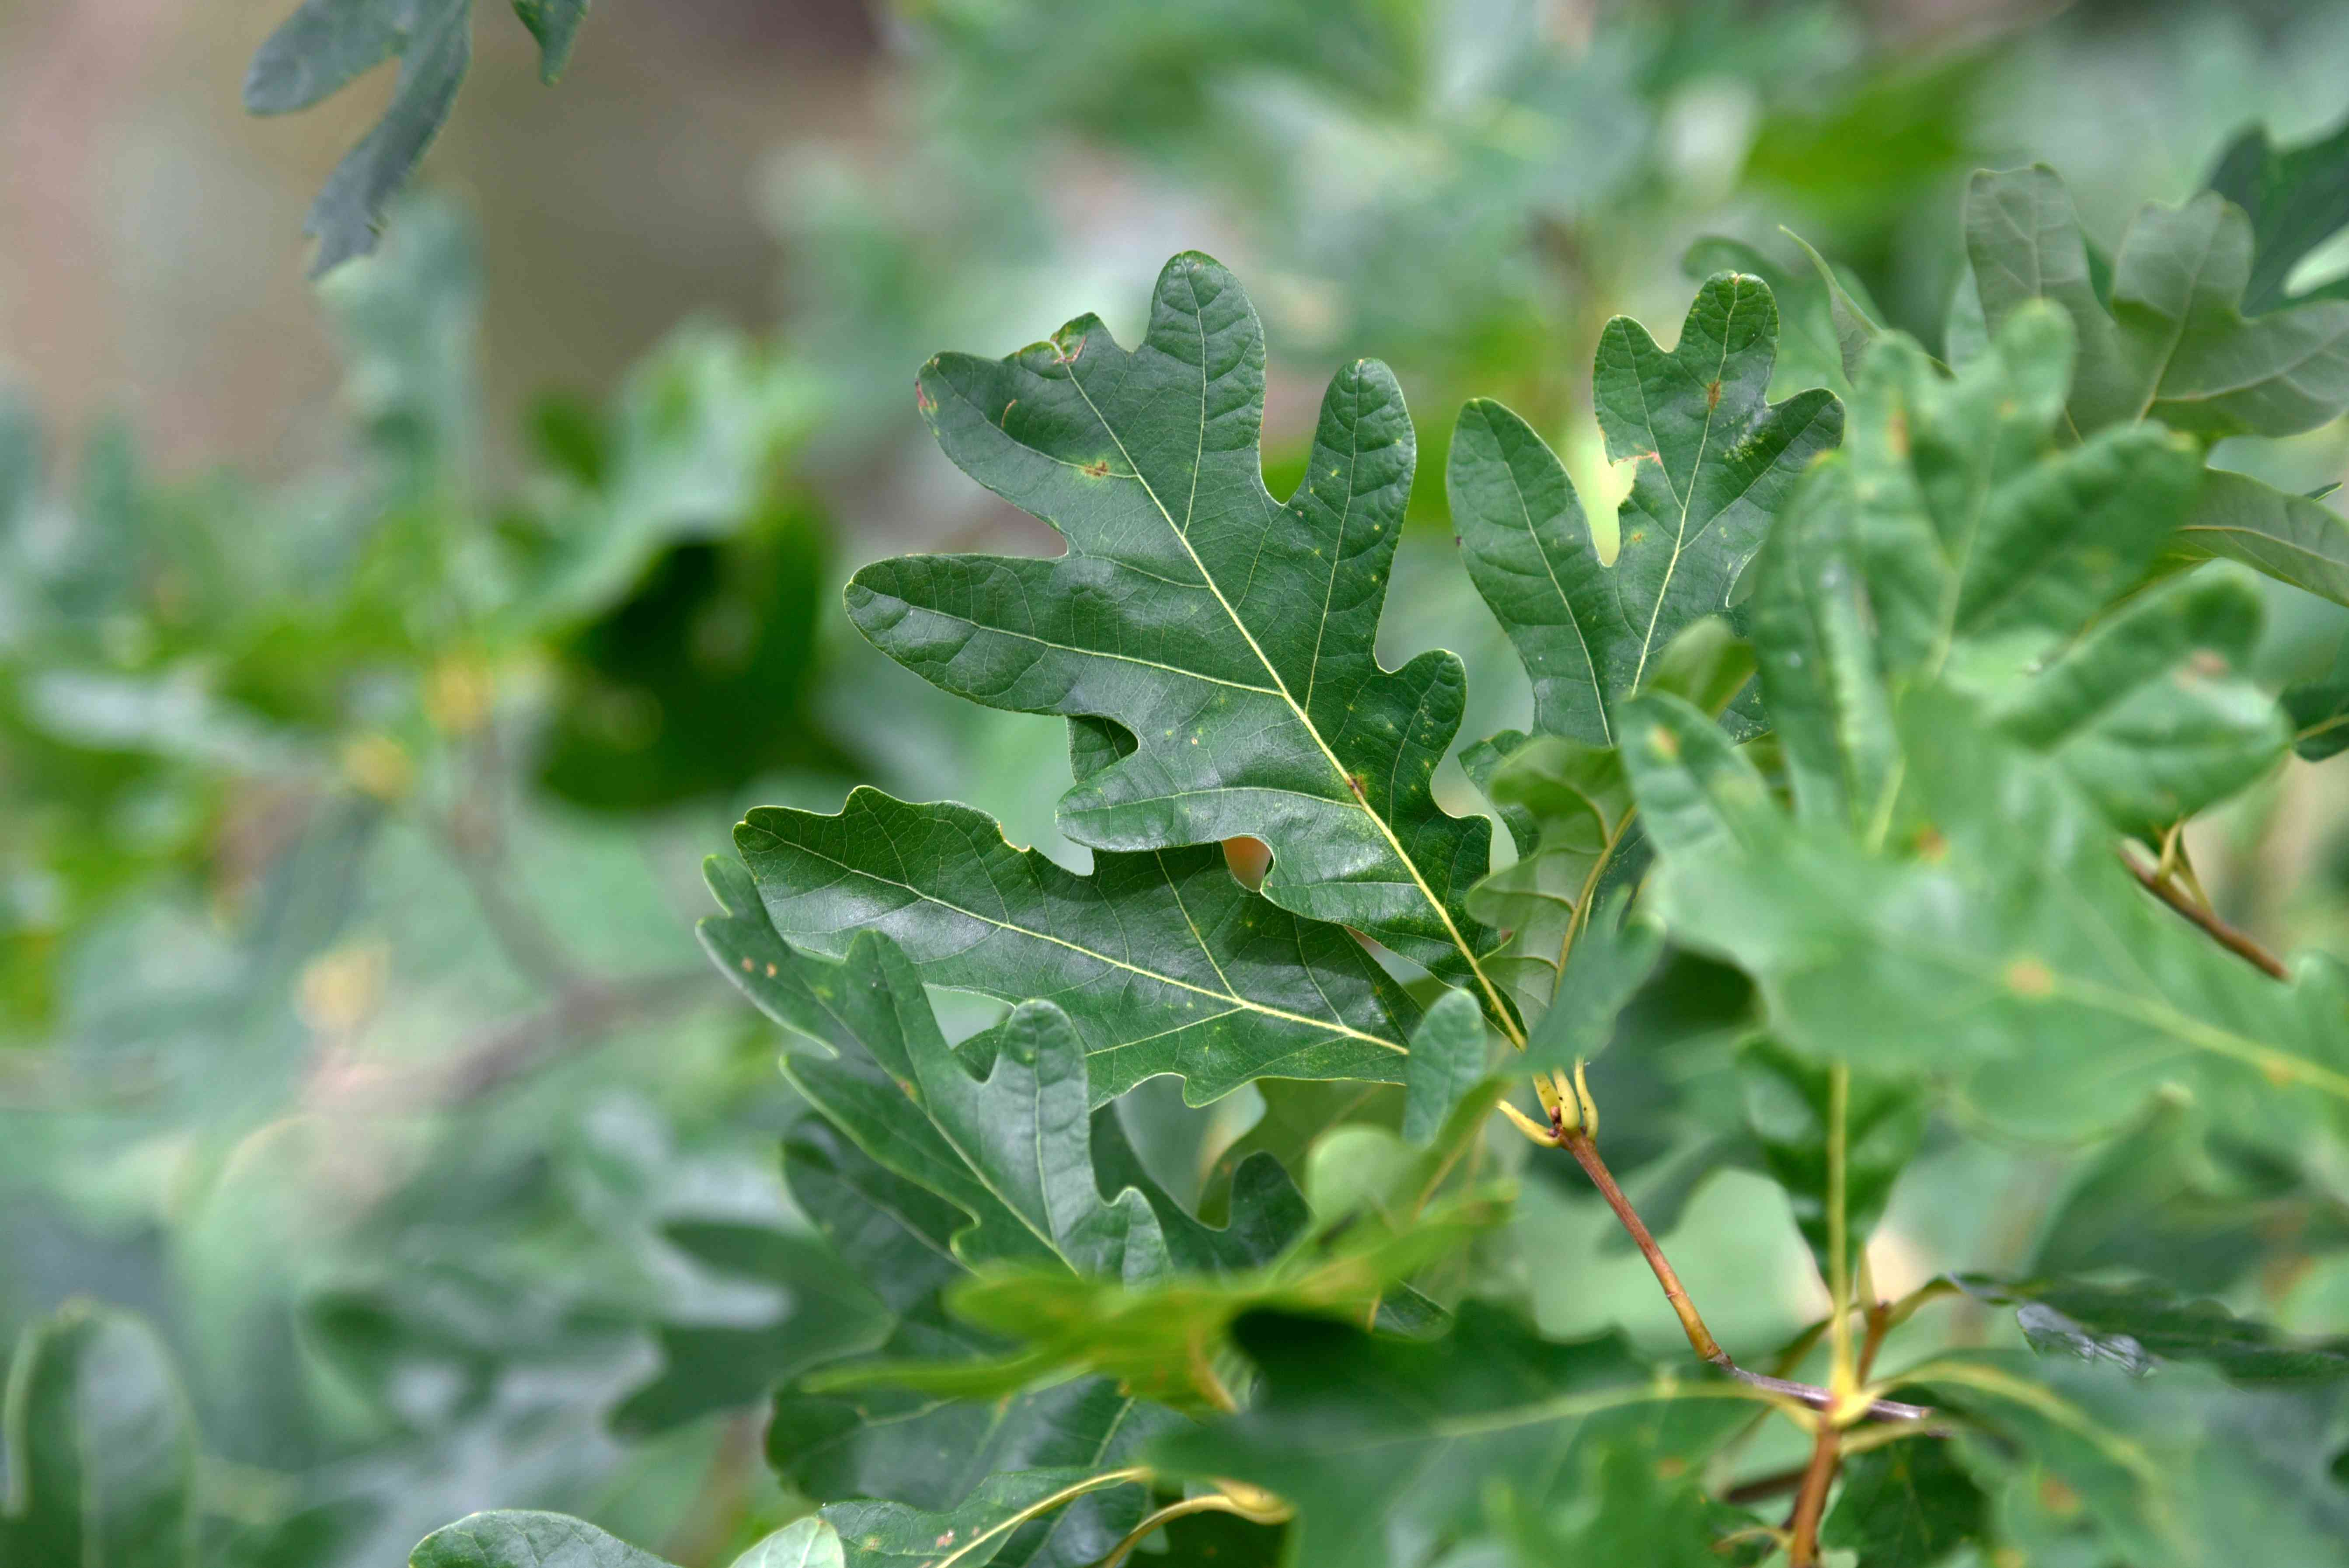 White oak branch with large lobed leaves closeup